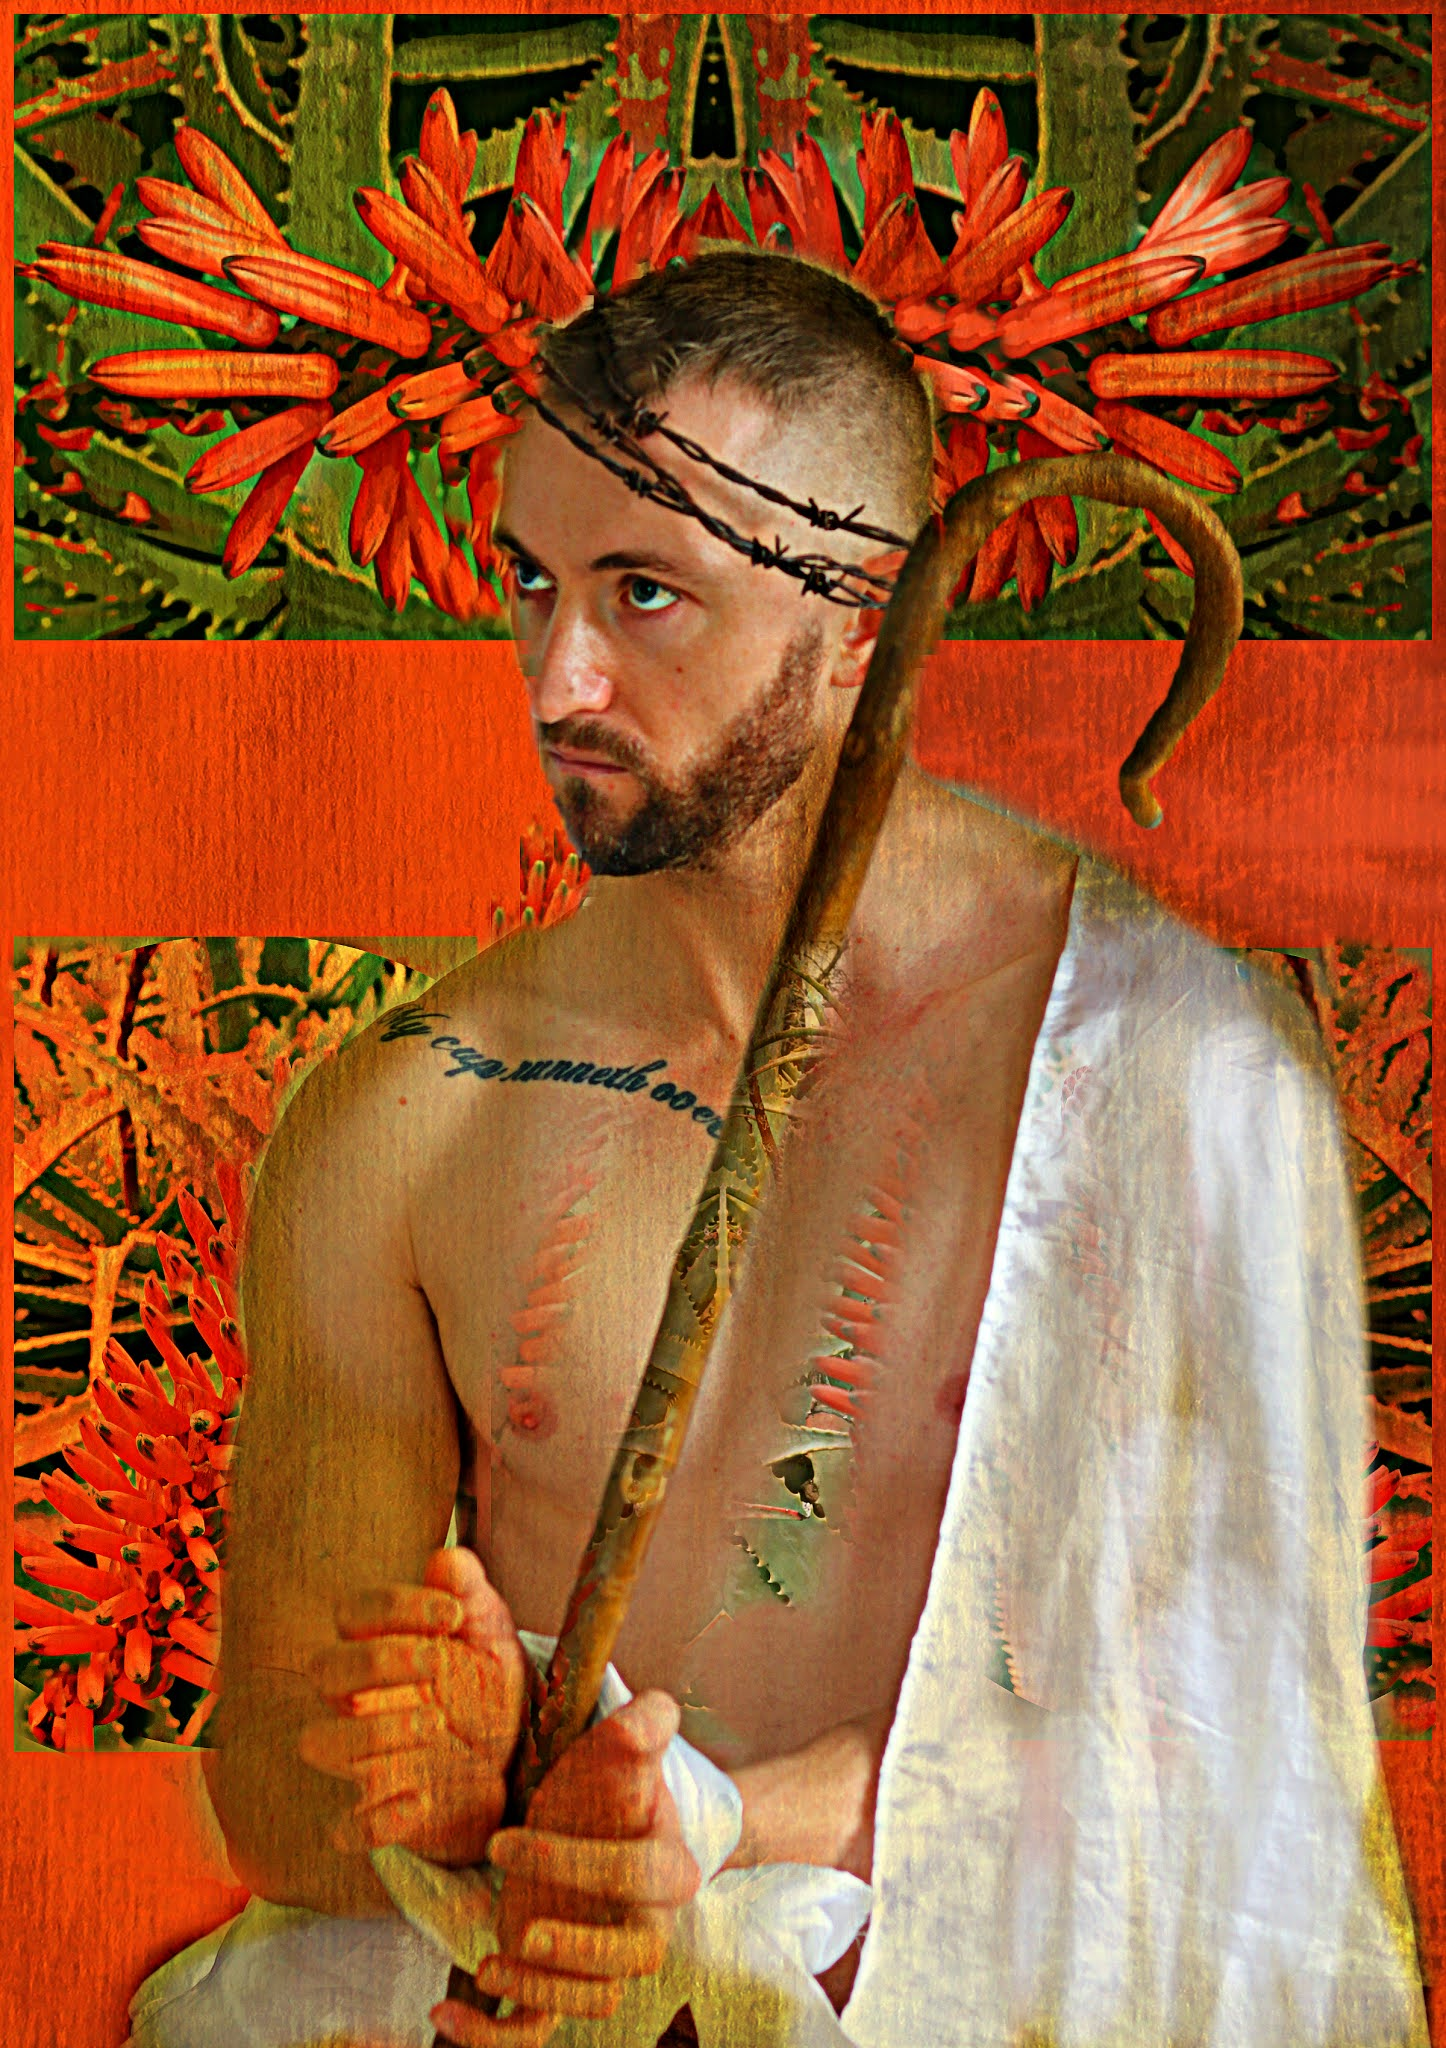 A light skinned man sits, his hands are bound in front of him, his chest is bare, one shoulder covered with white fabric, barbed wire in a crown on his head. The background is red with spear like flower and foliage visible.